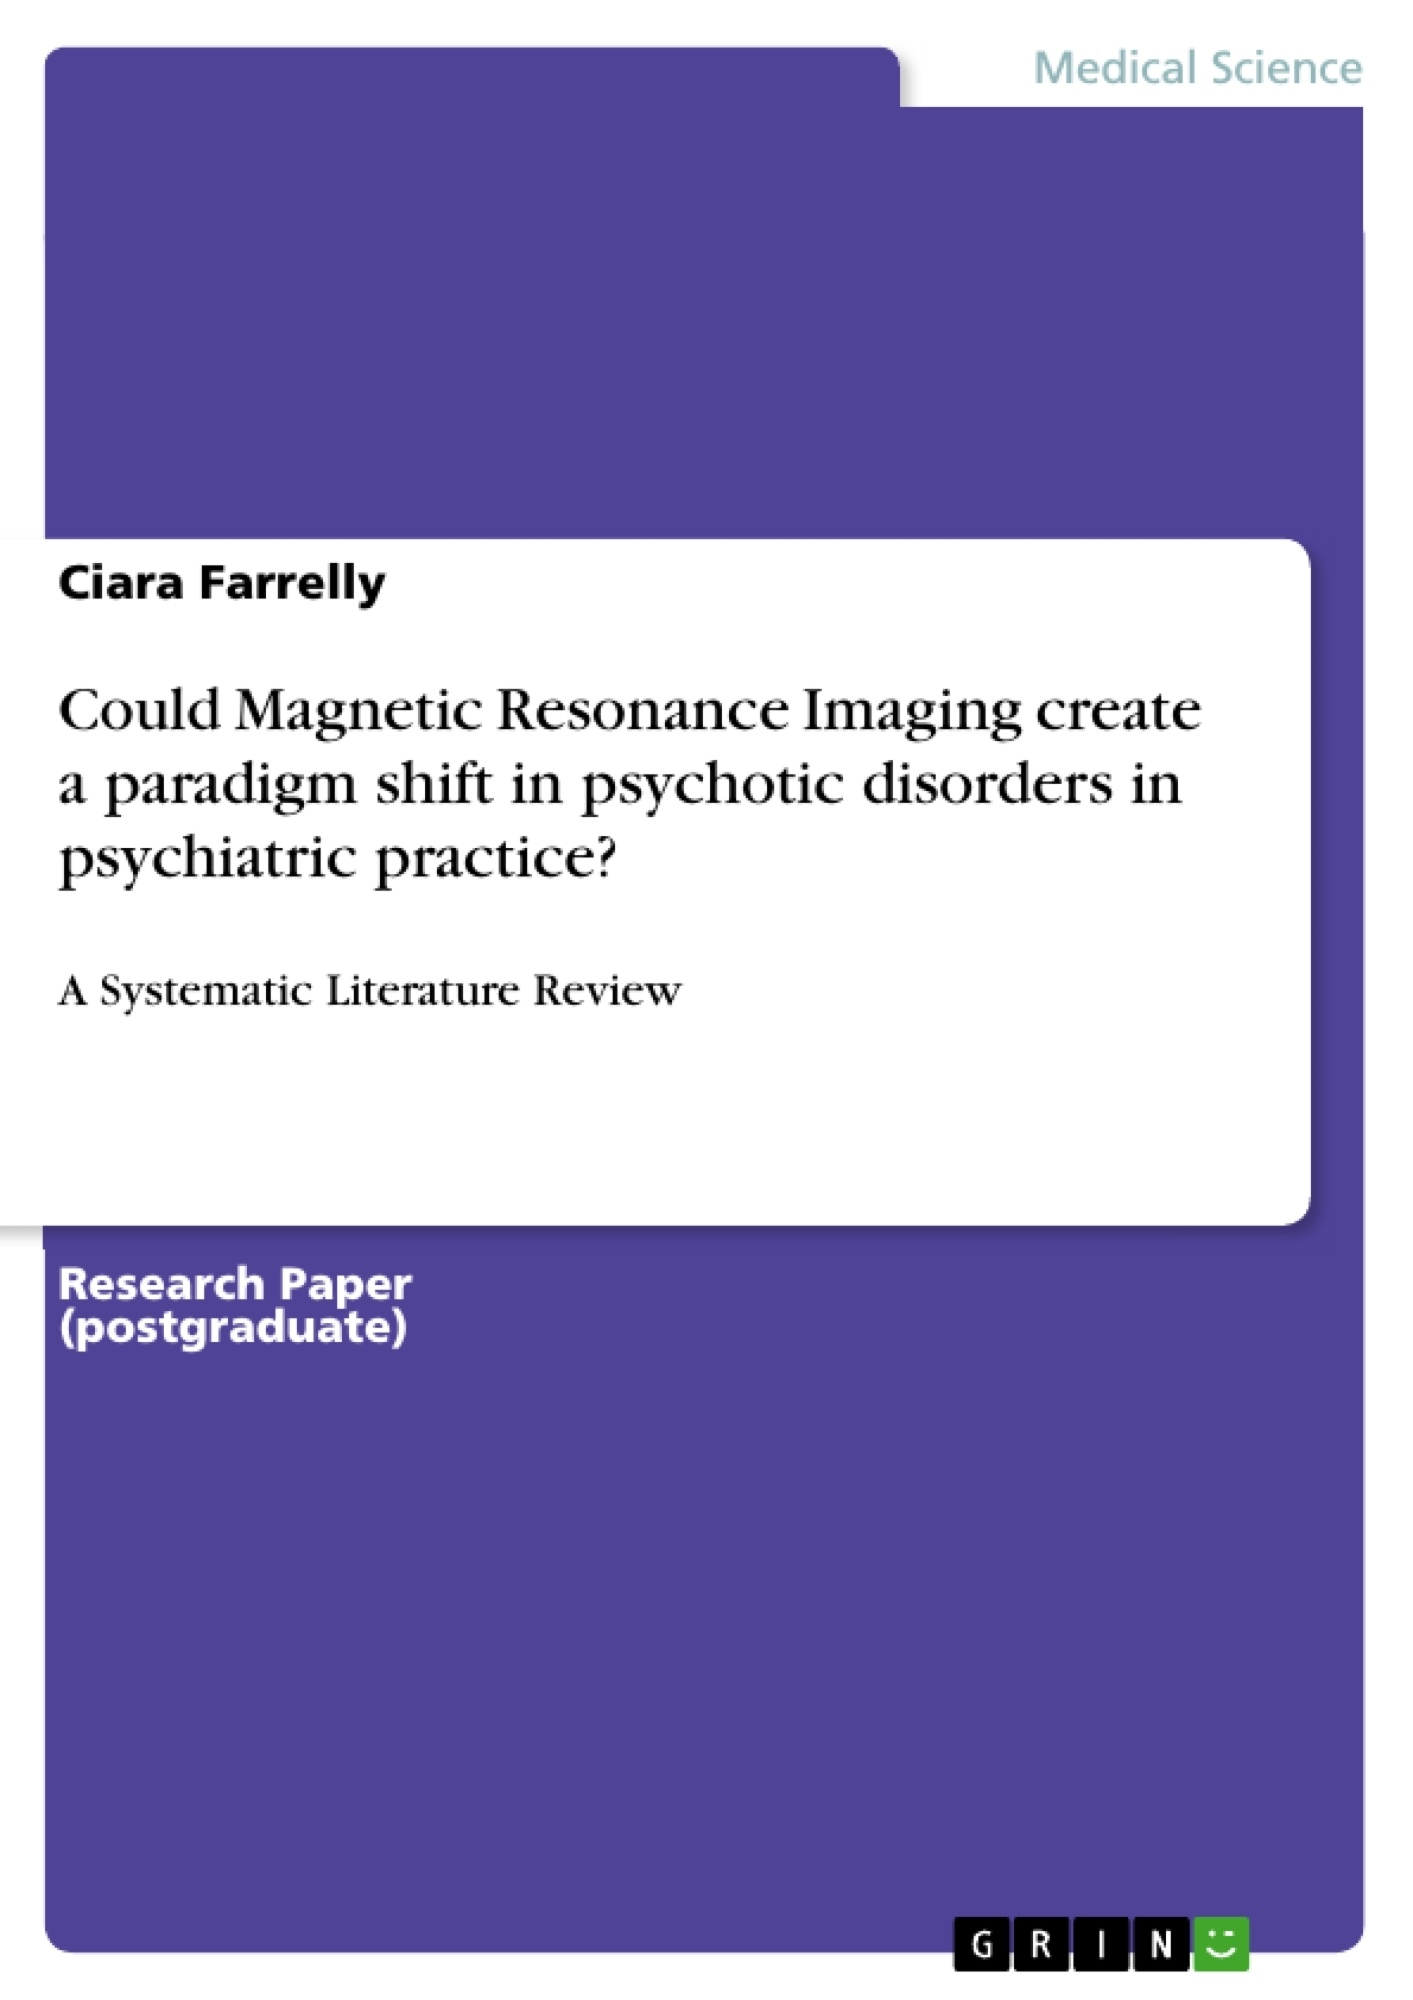 Title: Could Magnetic Resonance Imaging create a paradigm shift in psychotic disorders in psychiatric practice?